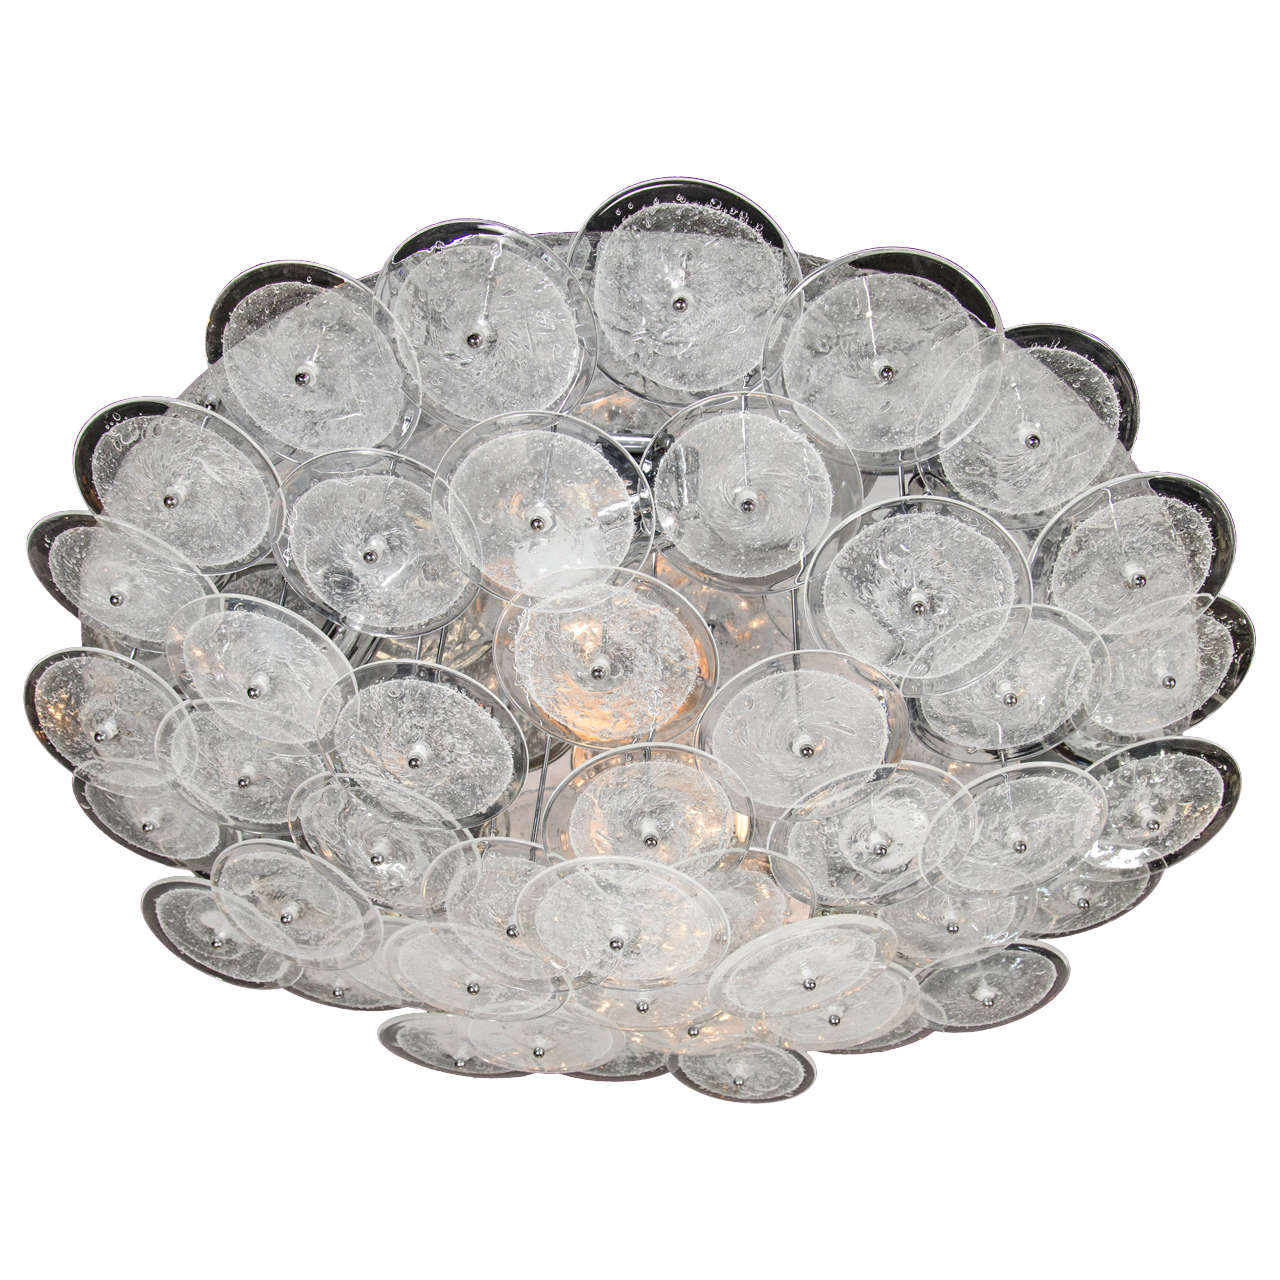 midcentury modern flush mount chandelier with handblown murano glass discs. midcentury modern flush mount chandelier with handblown murano